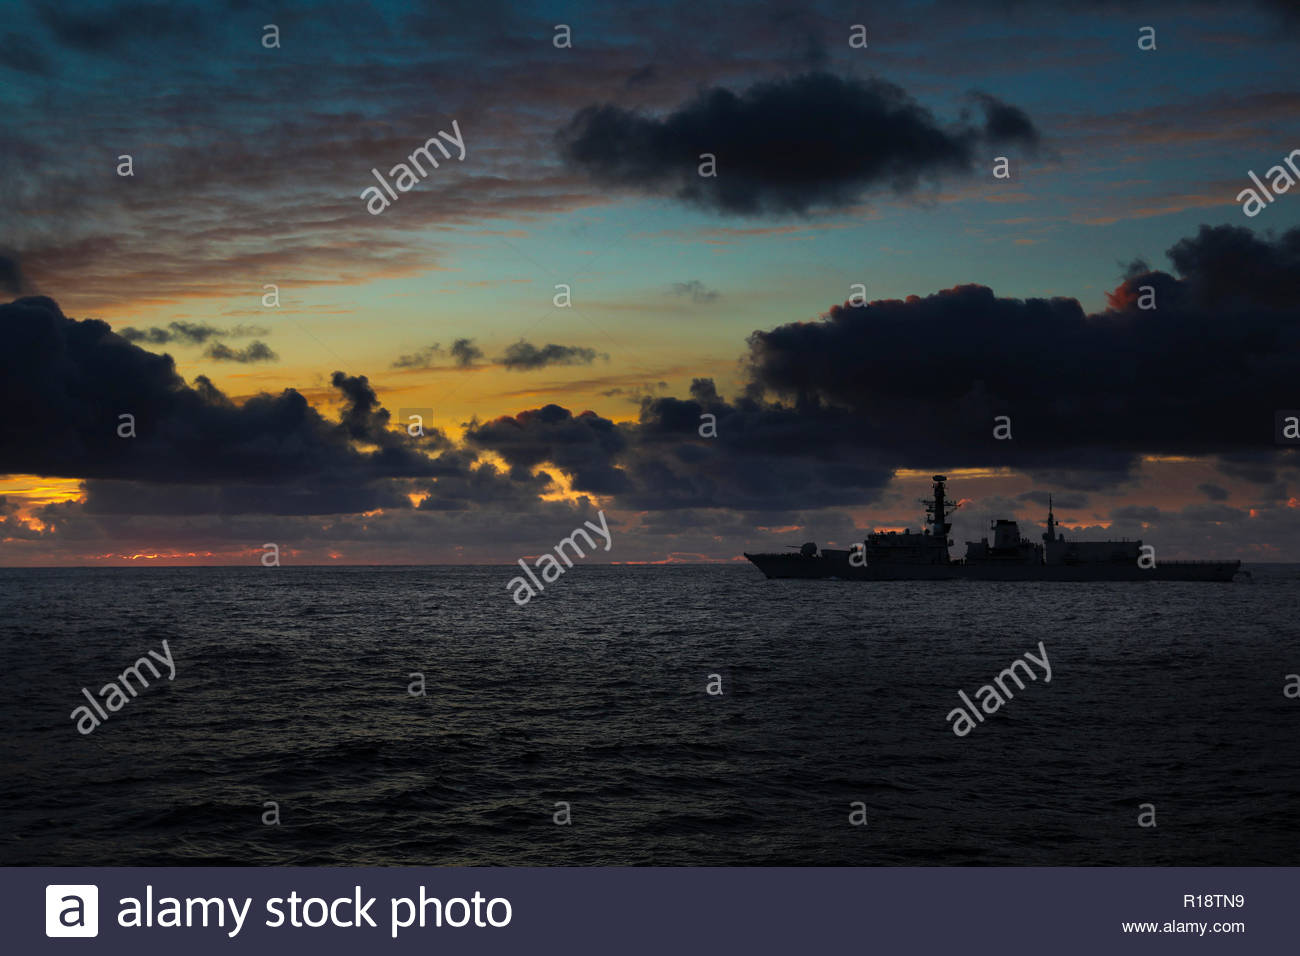 Royal Navy Type 23 frigate - Stock Image